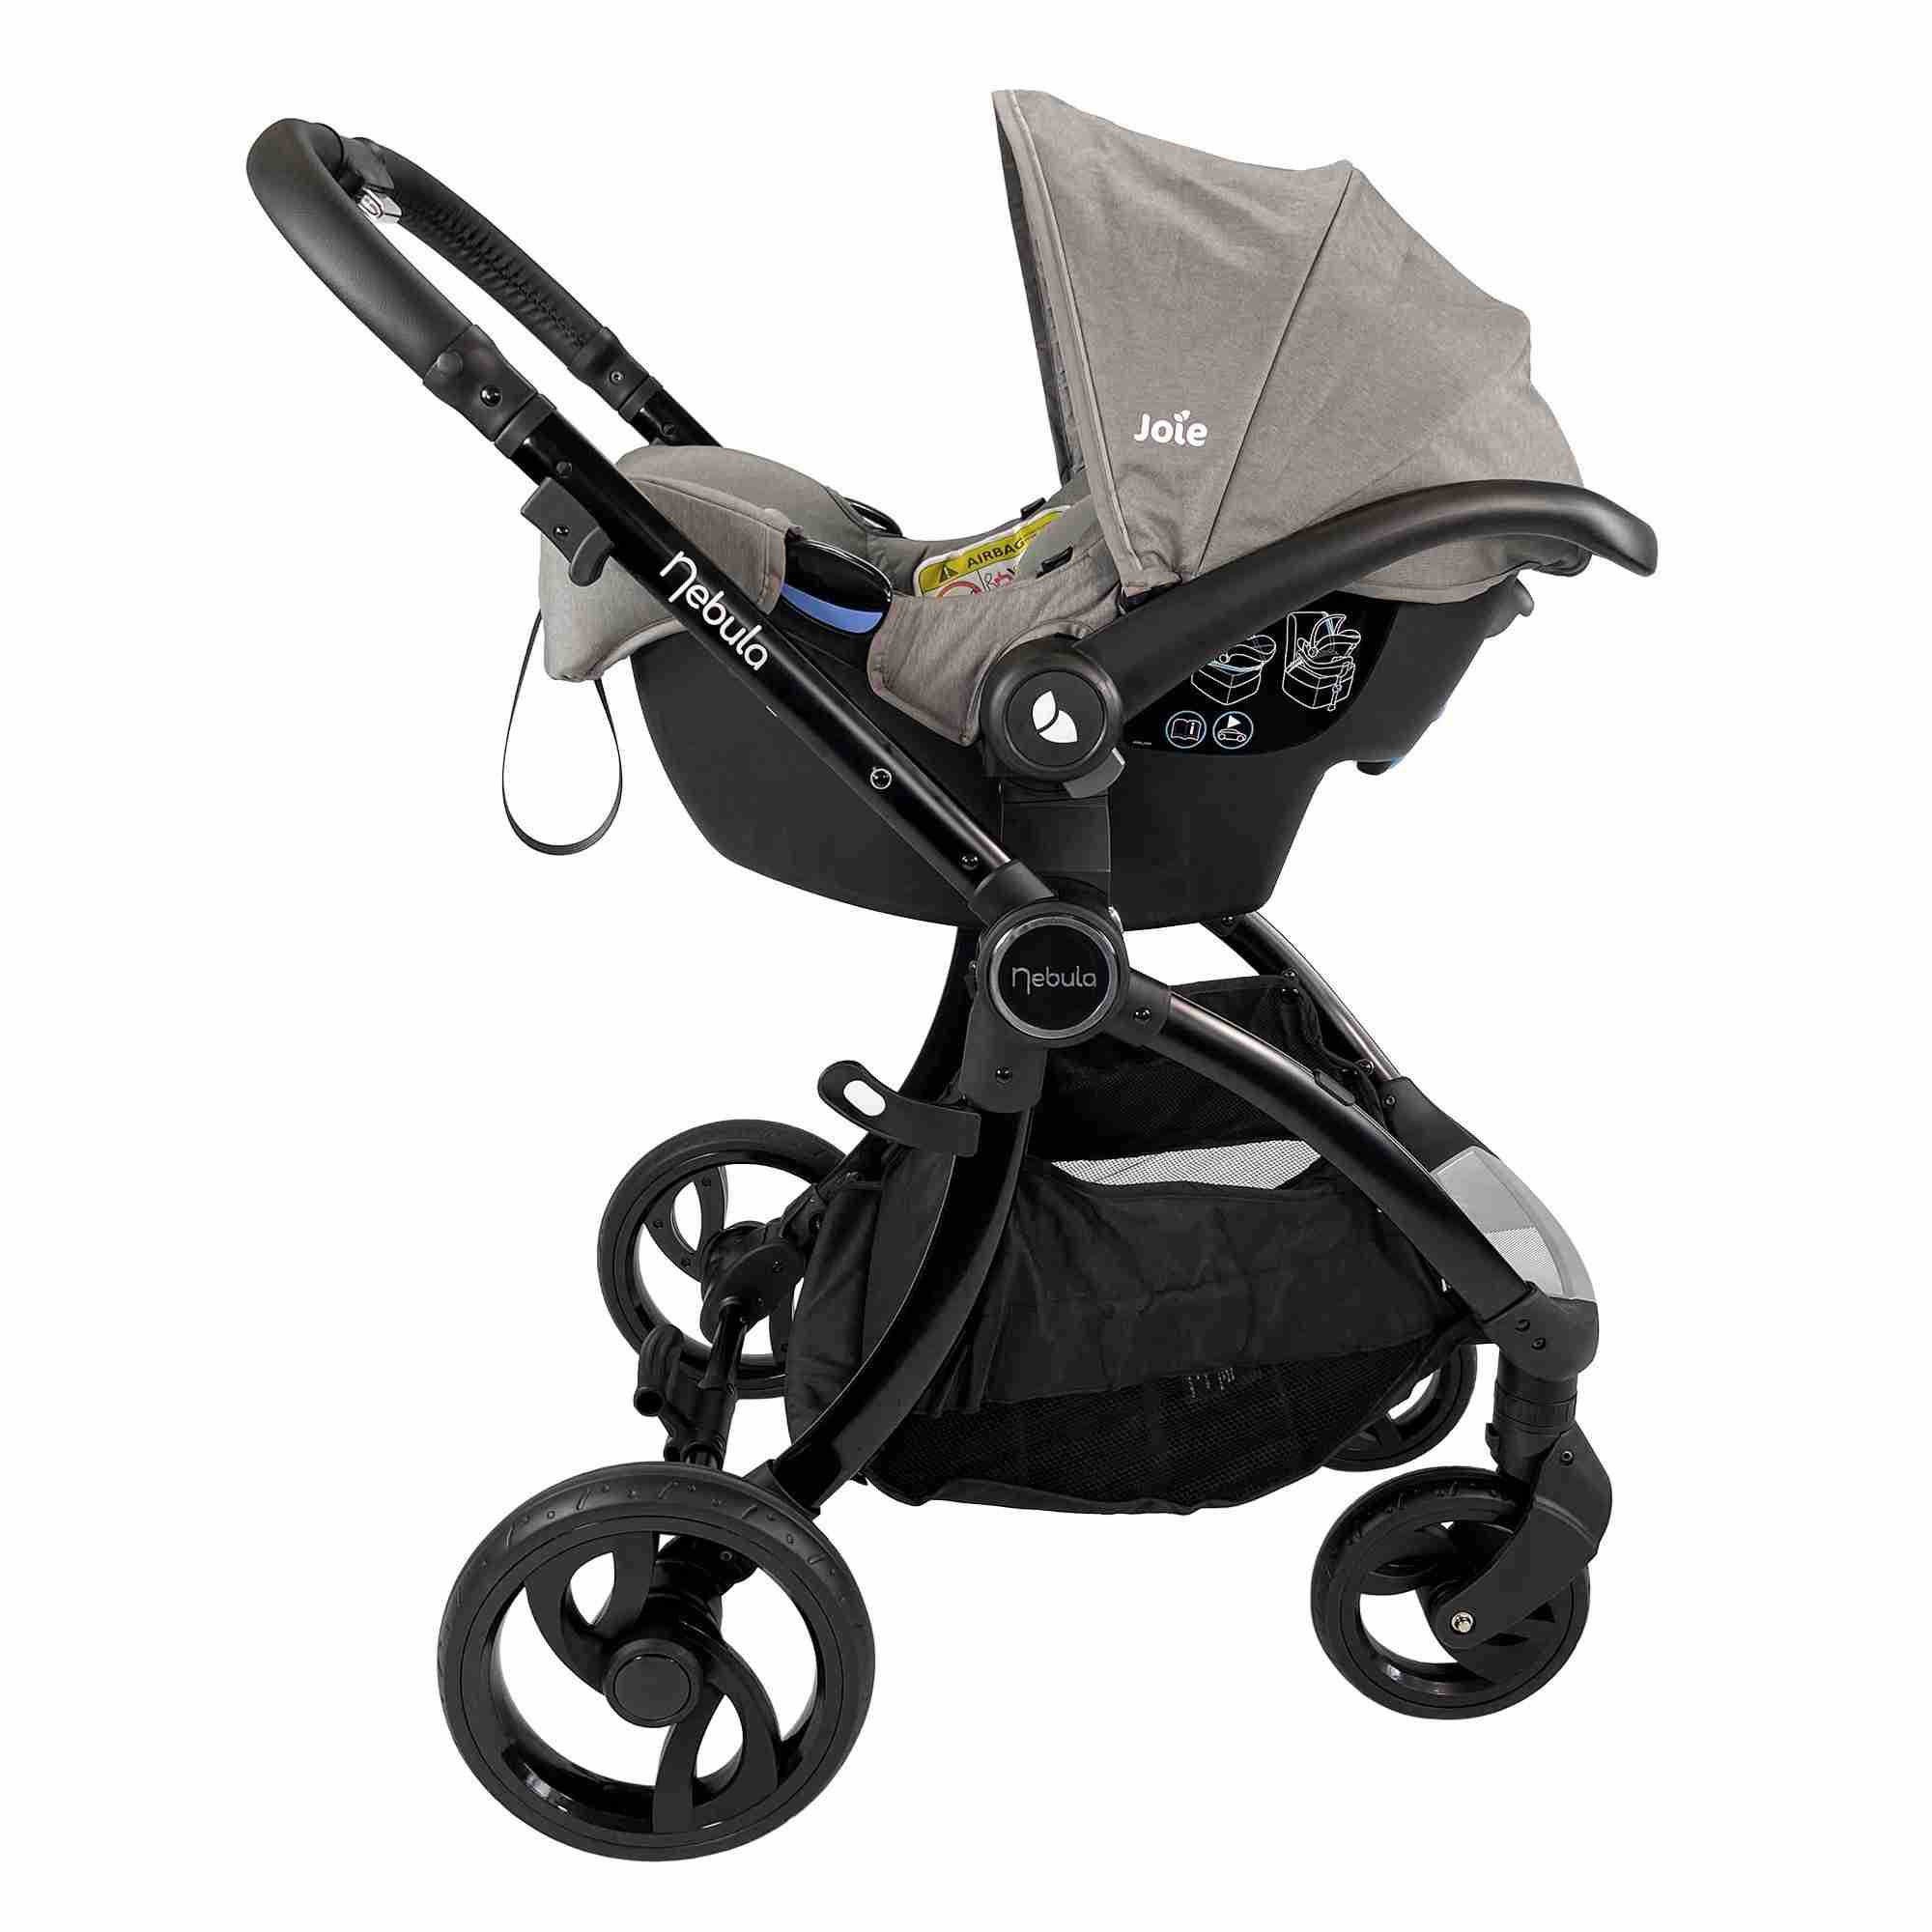 Venture Nebula Cool Grey Stroller with car seat attached using car seat adapters